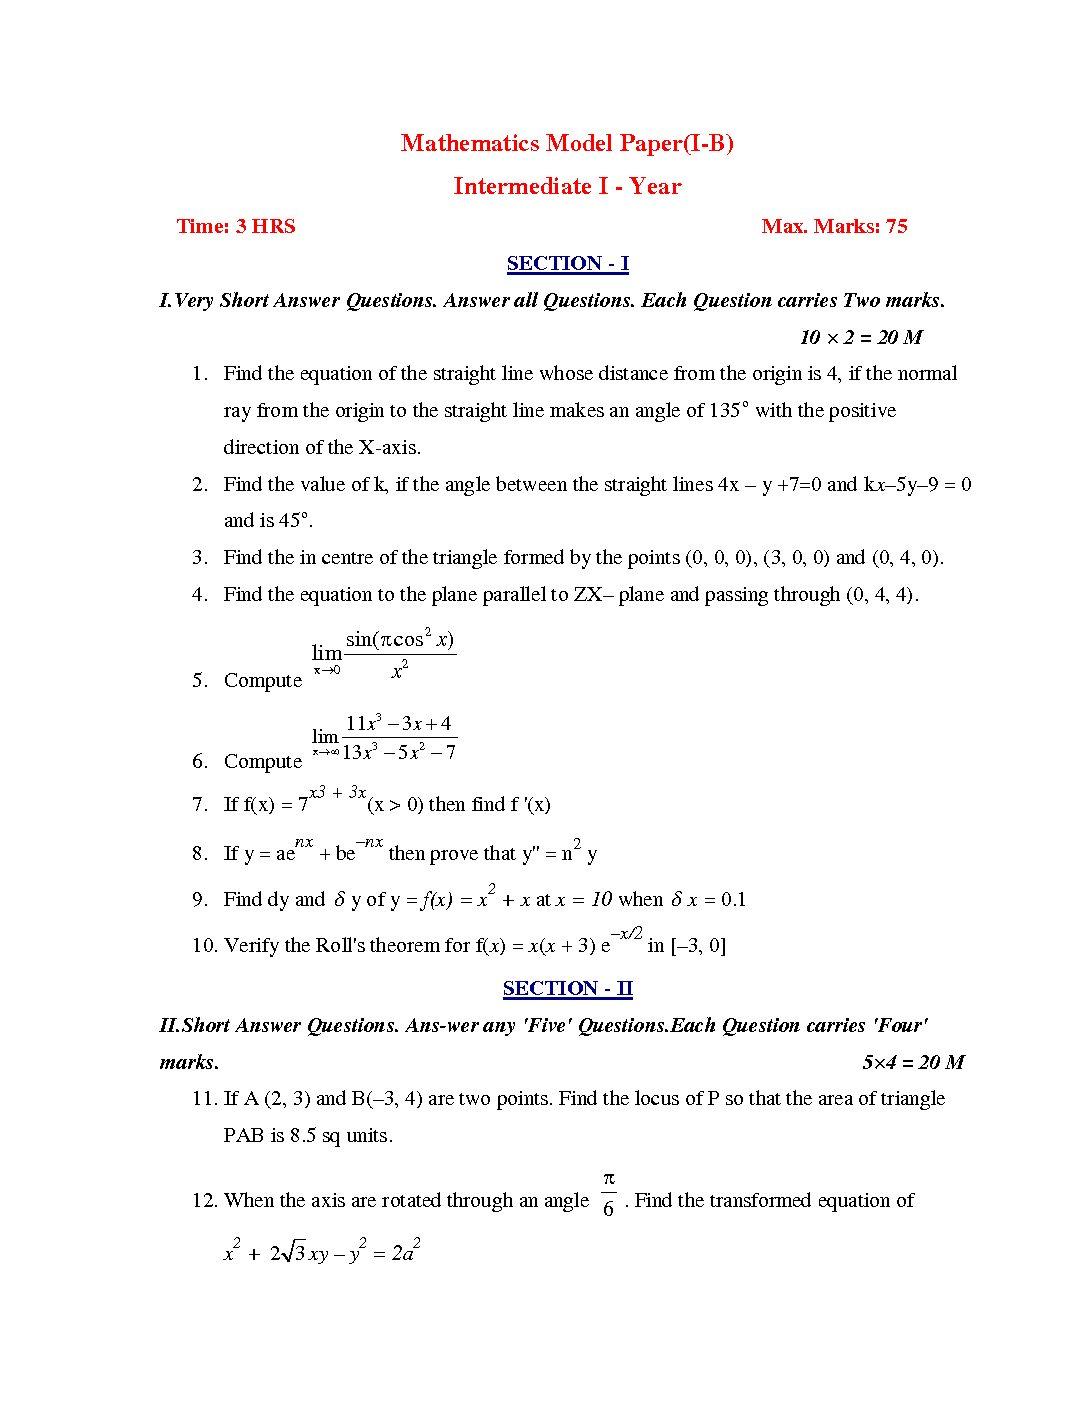 inter 1st year model papers mpc 2018